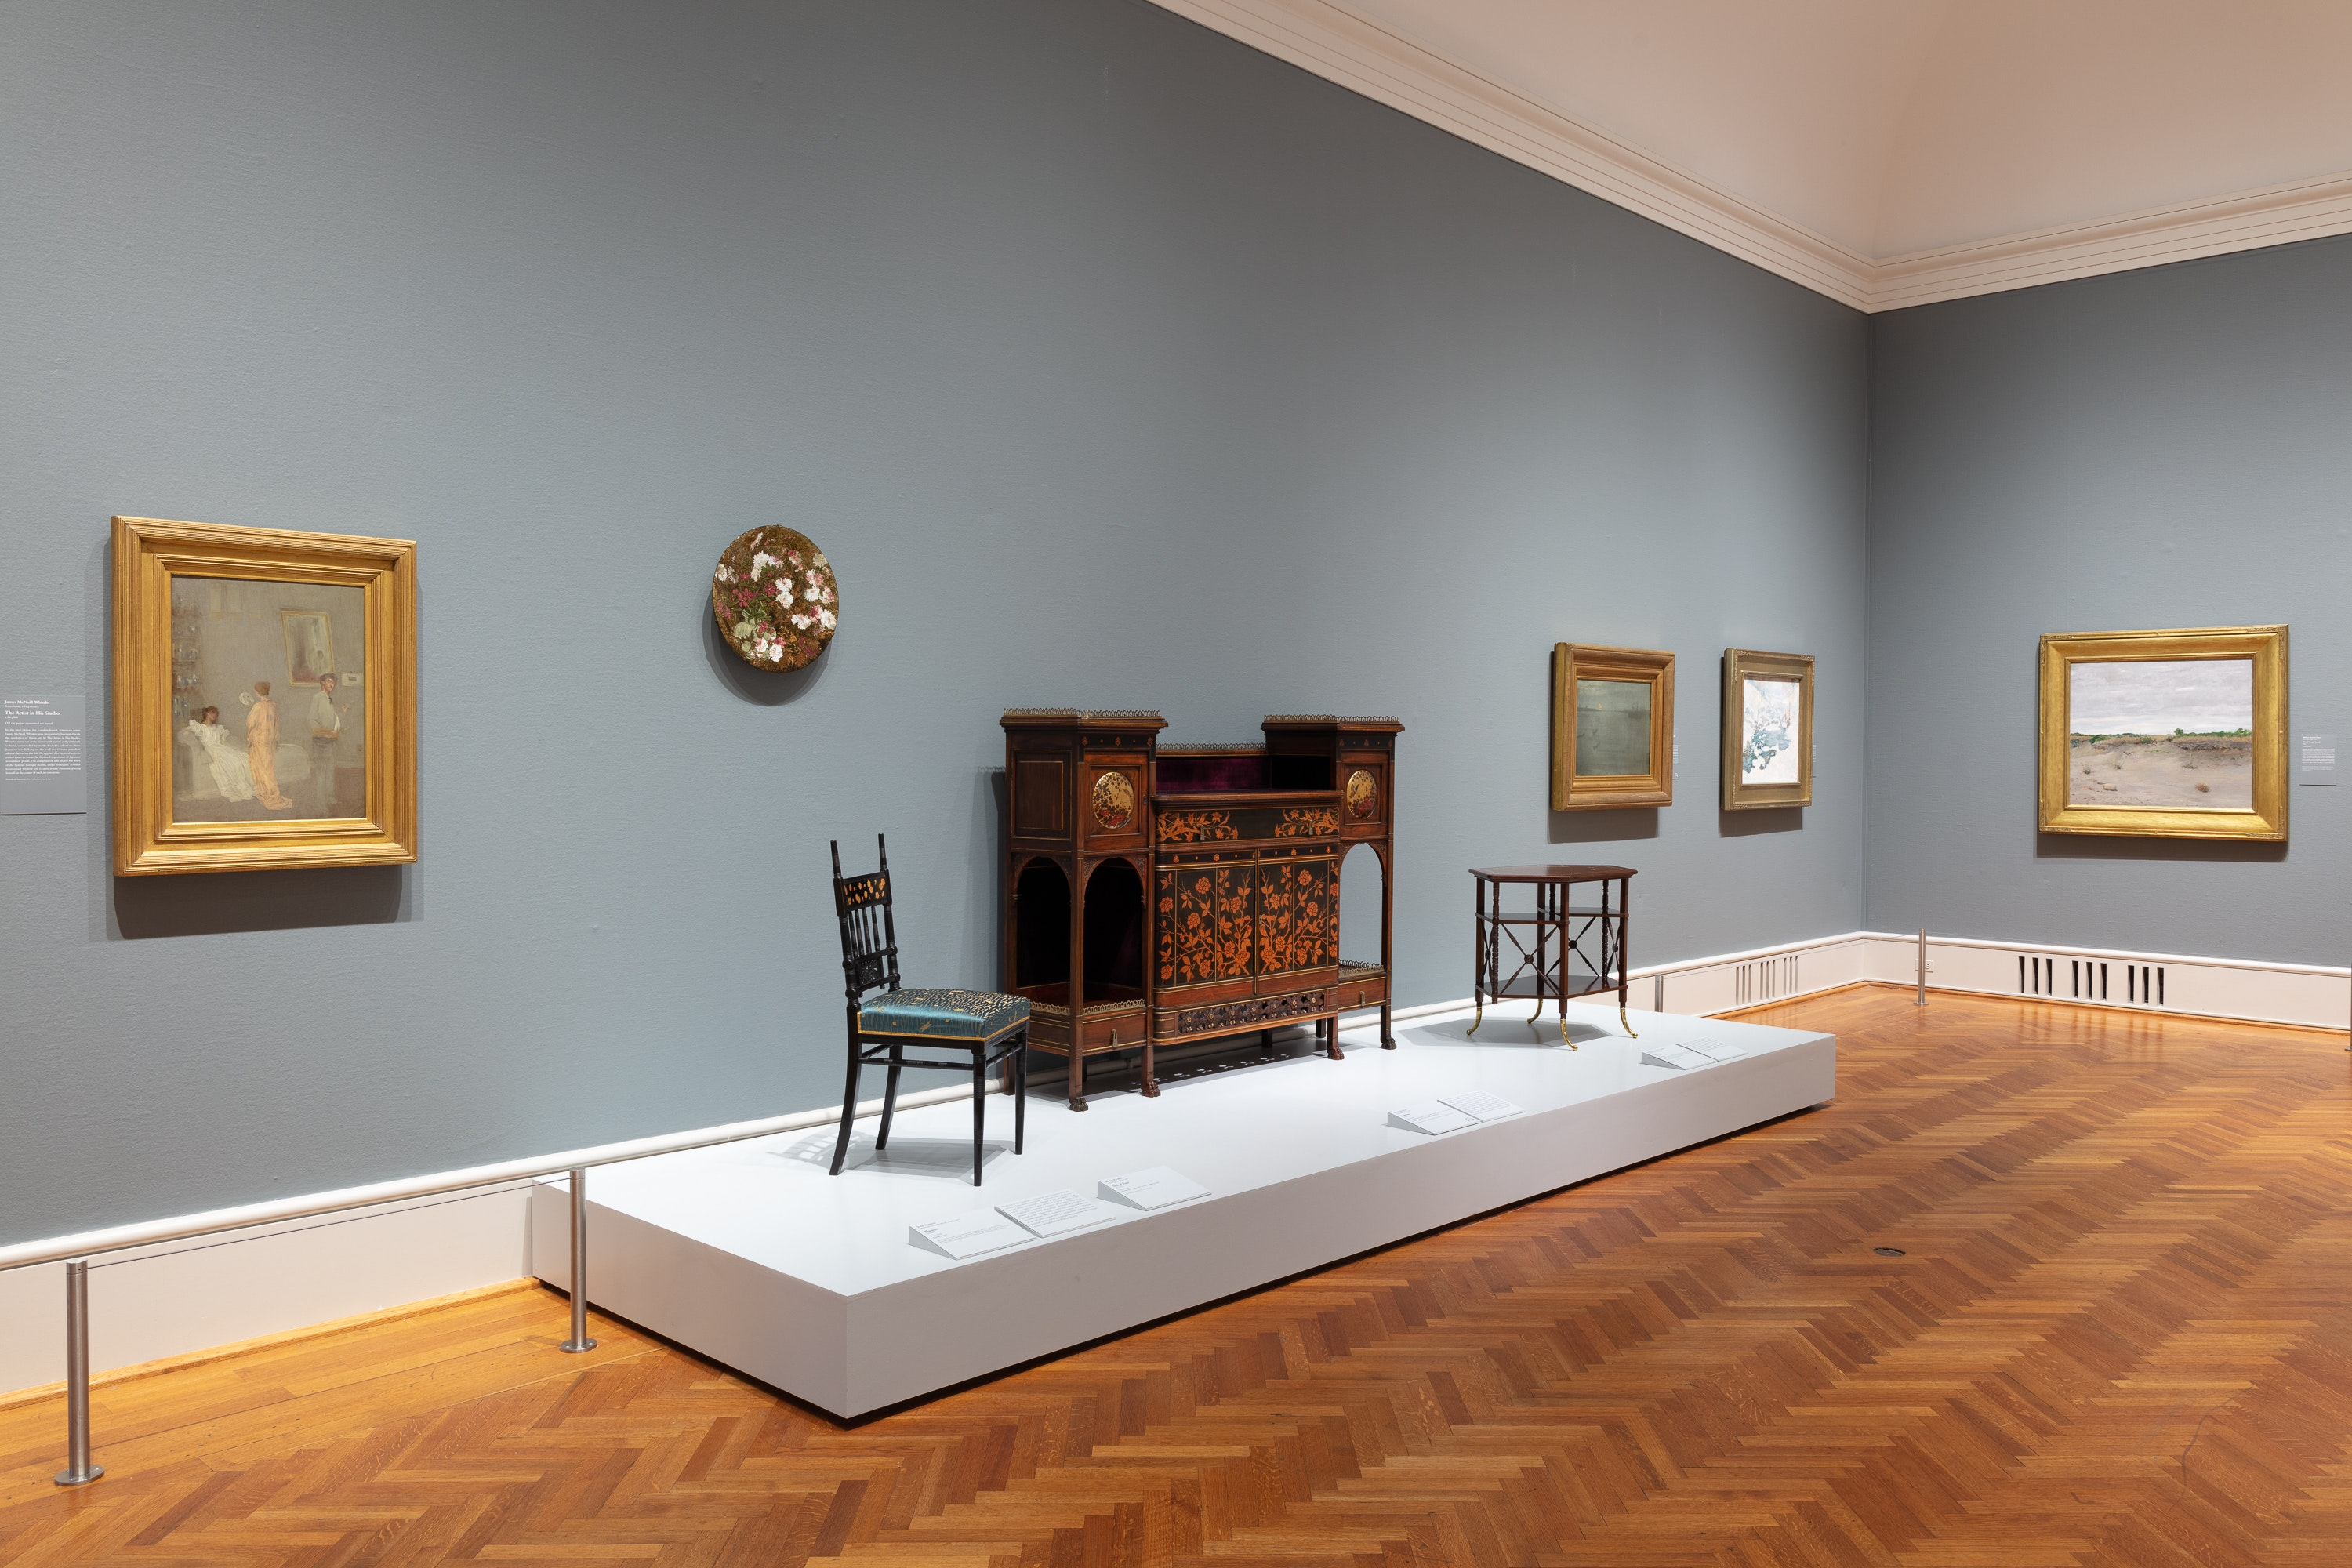 Photo of wall in gallery 273 featuring paintings and furniture from the Gilded Age.